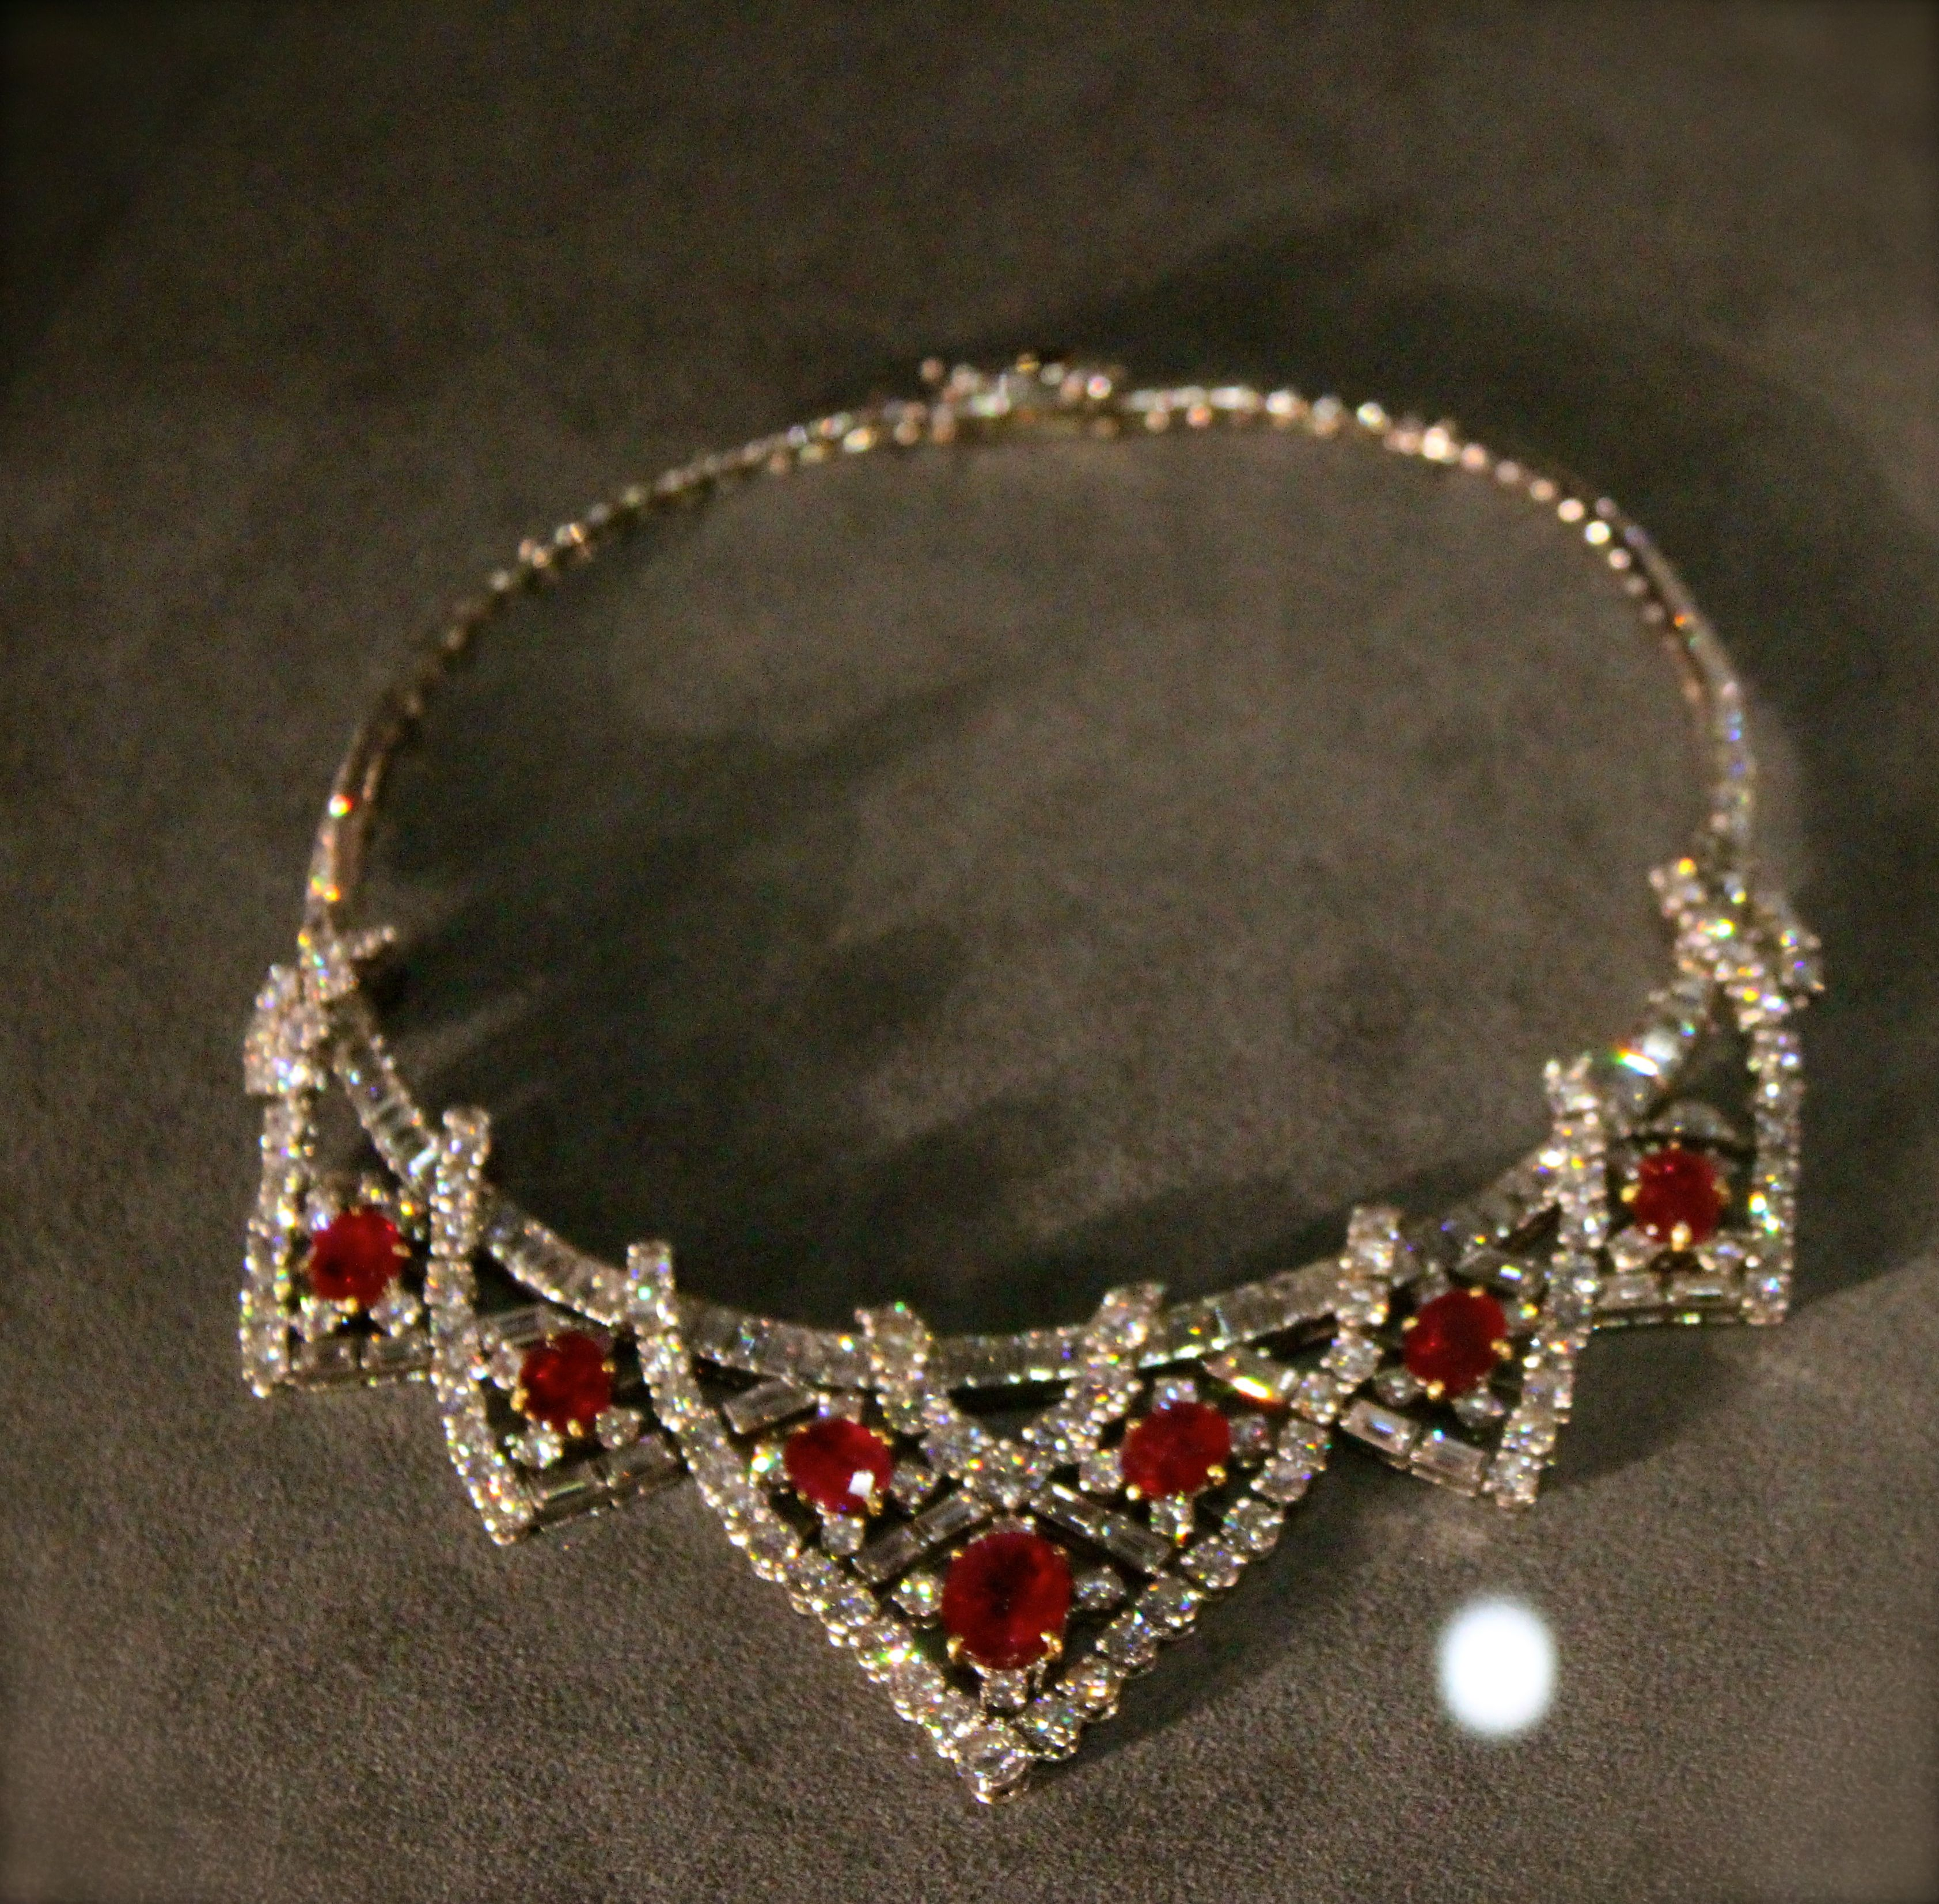 Elizabeth Taylor necklace